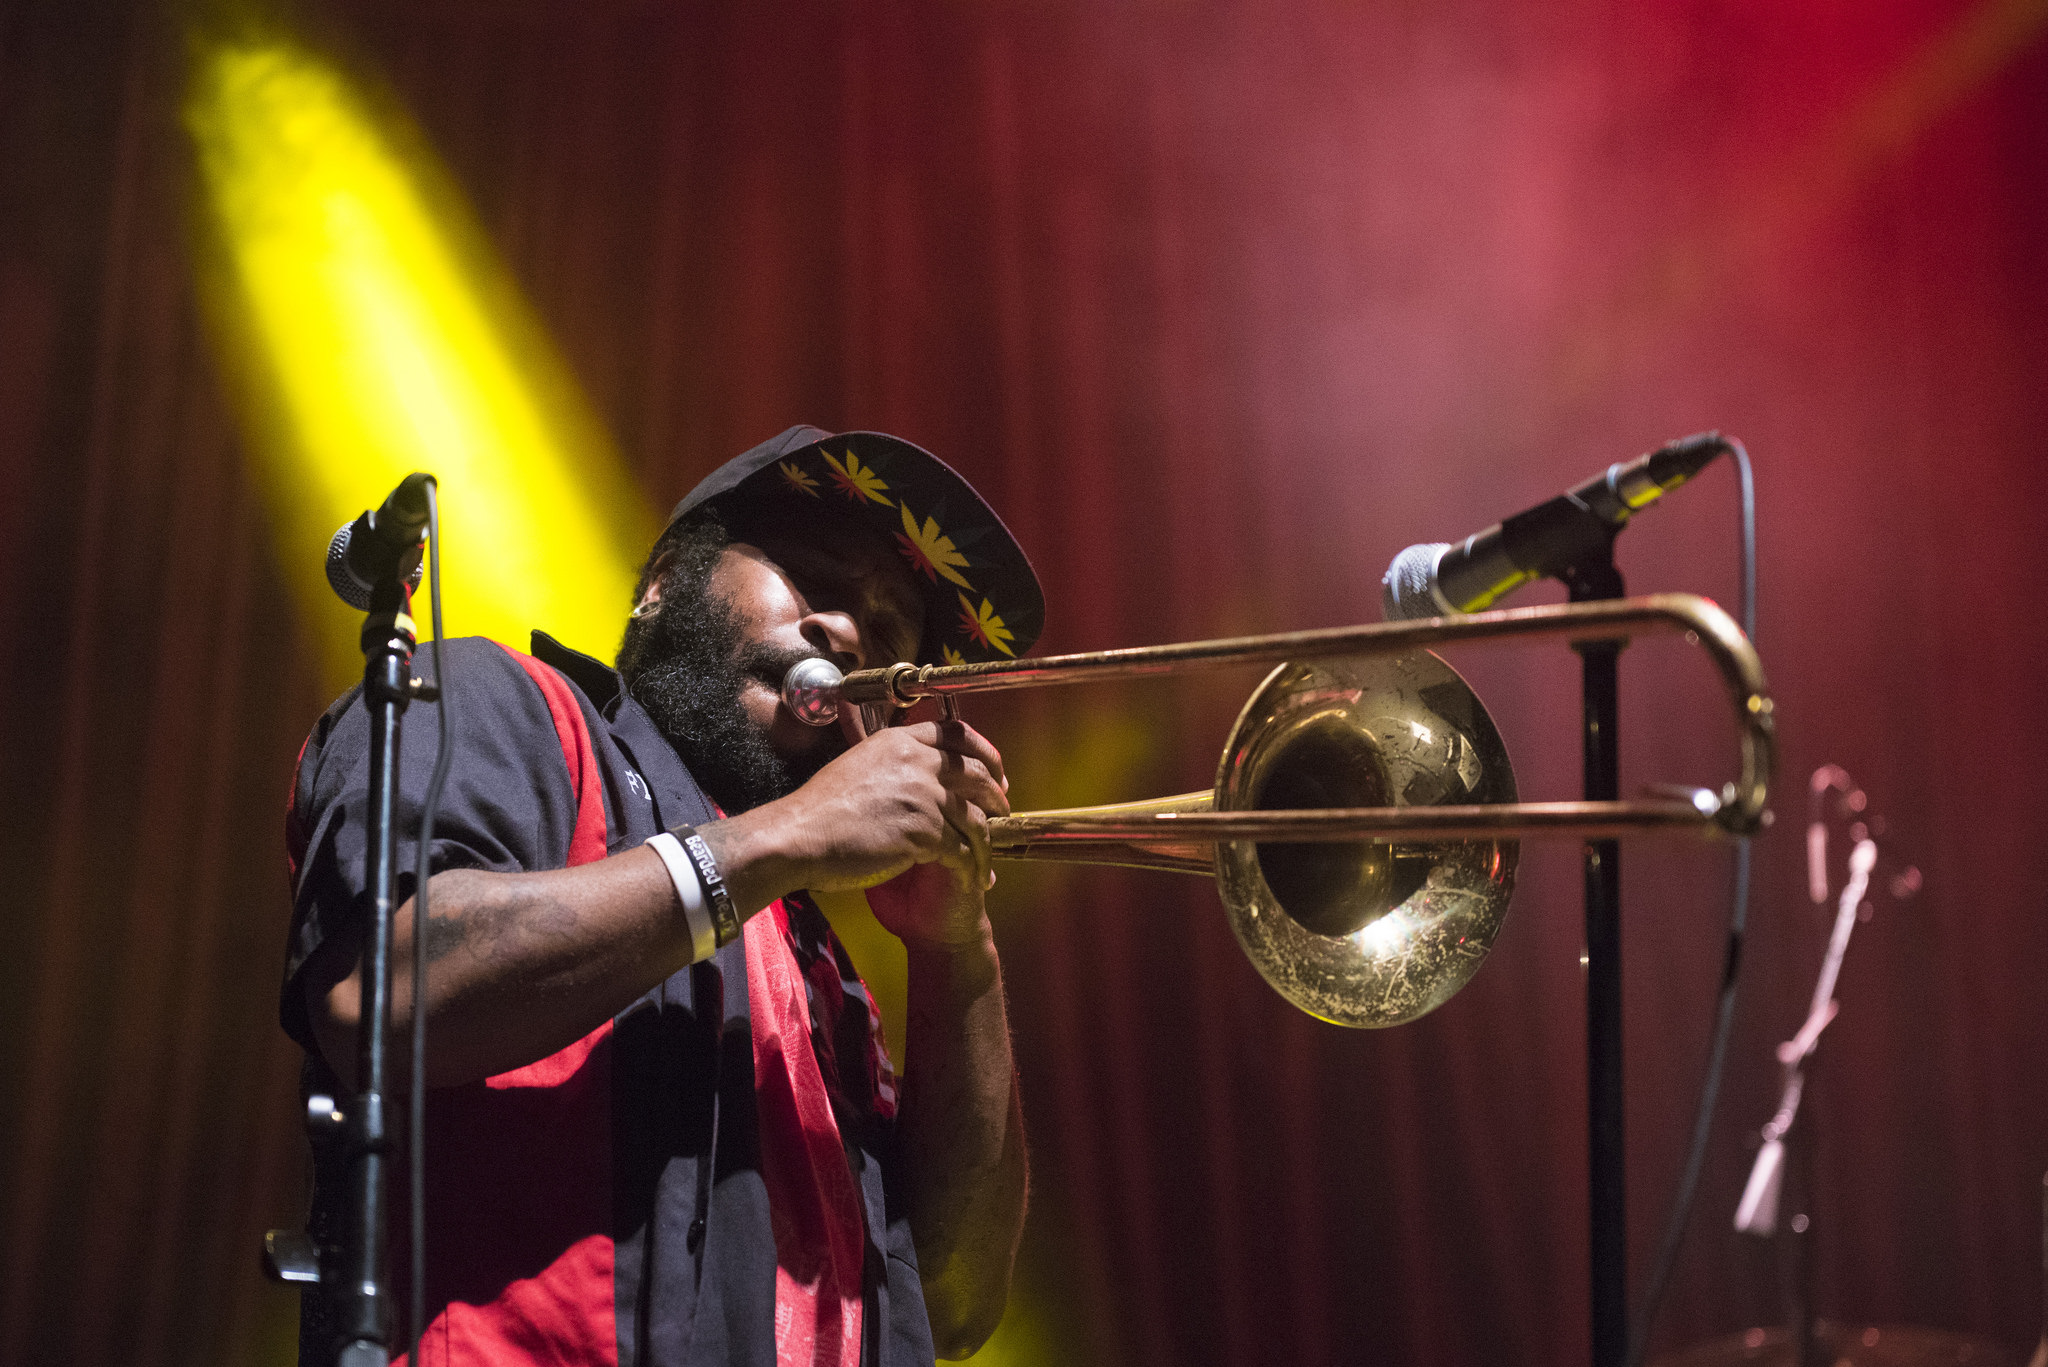 Jay Armant performs with Fishbone at Brooklyn Bowl in Las Vegas on Saturday, June 27, 2015.